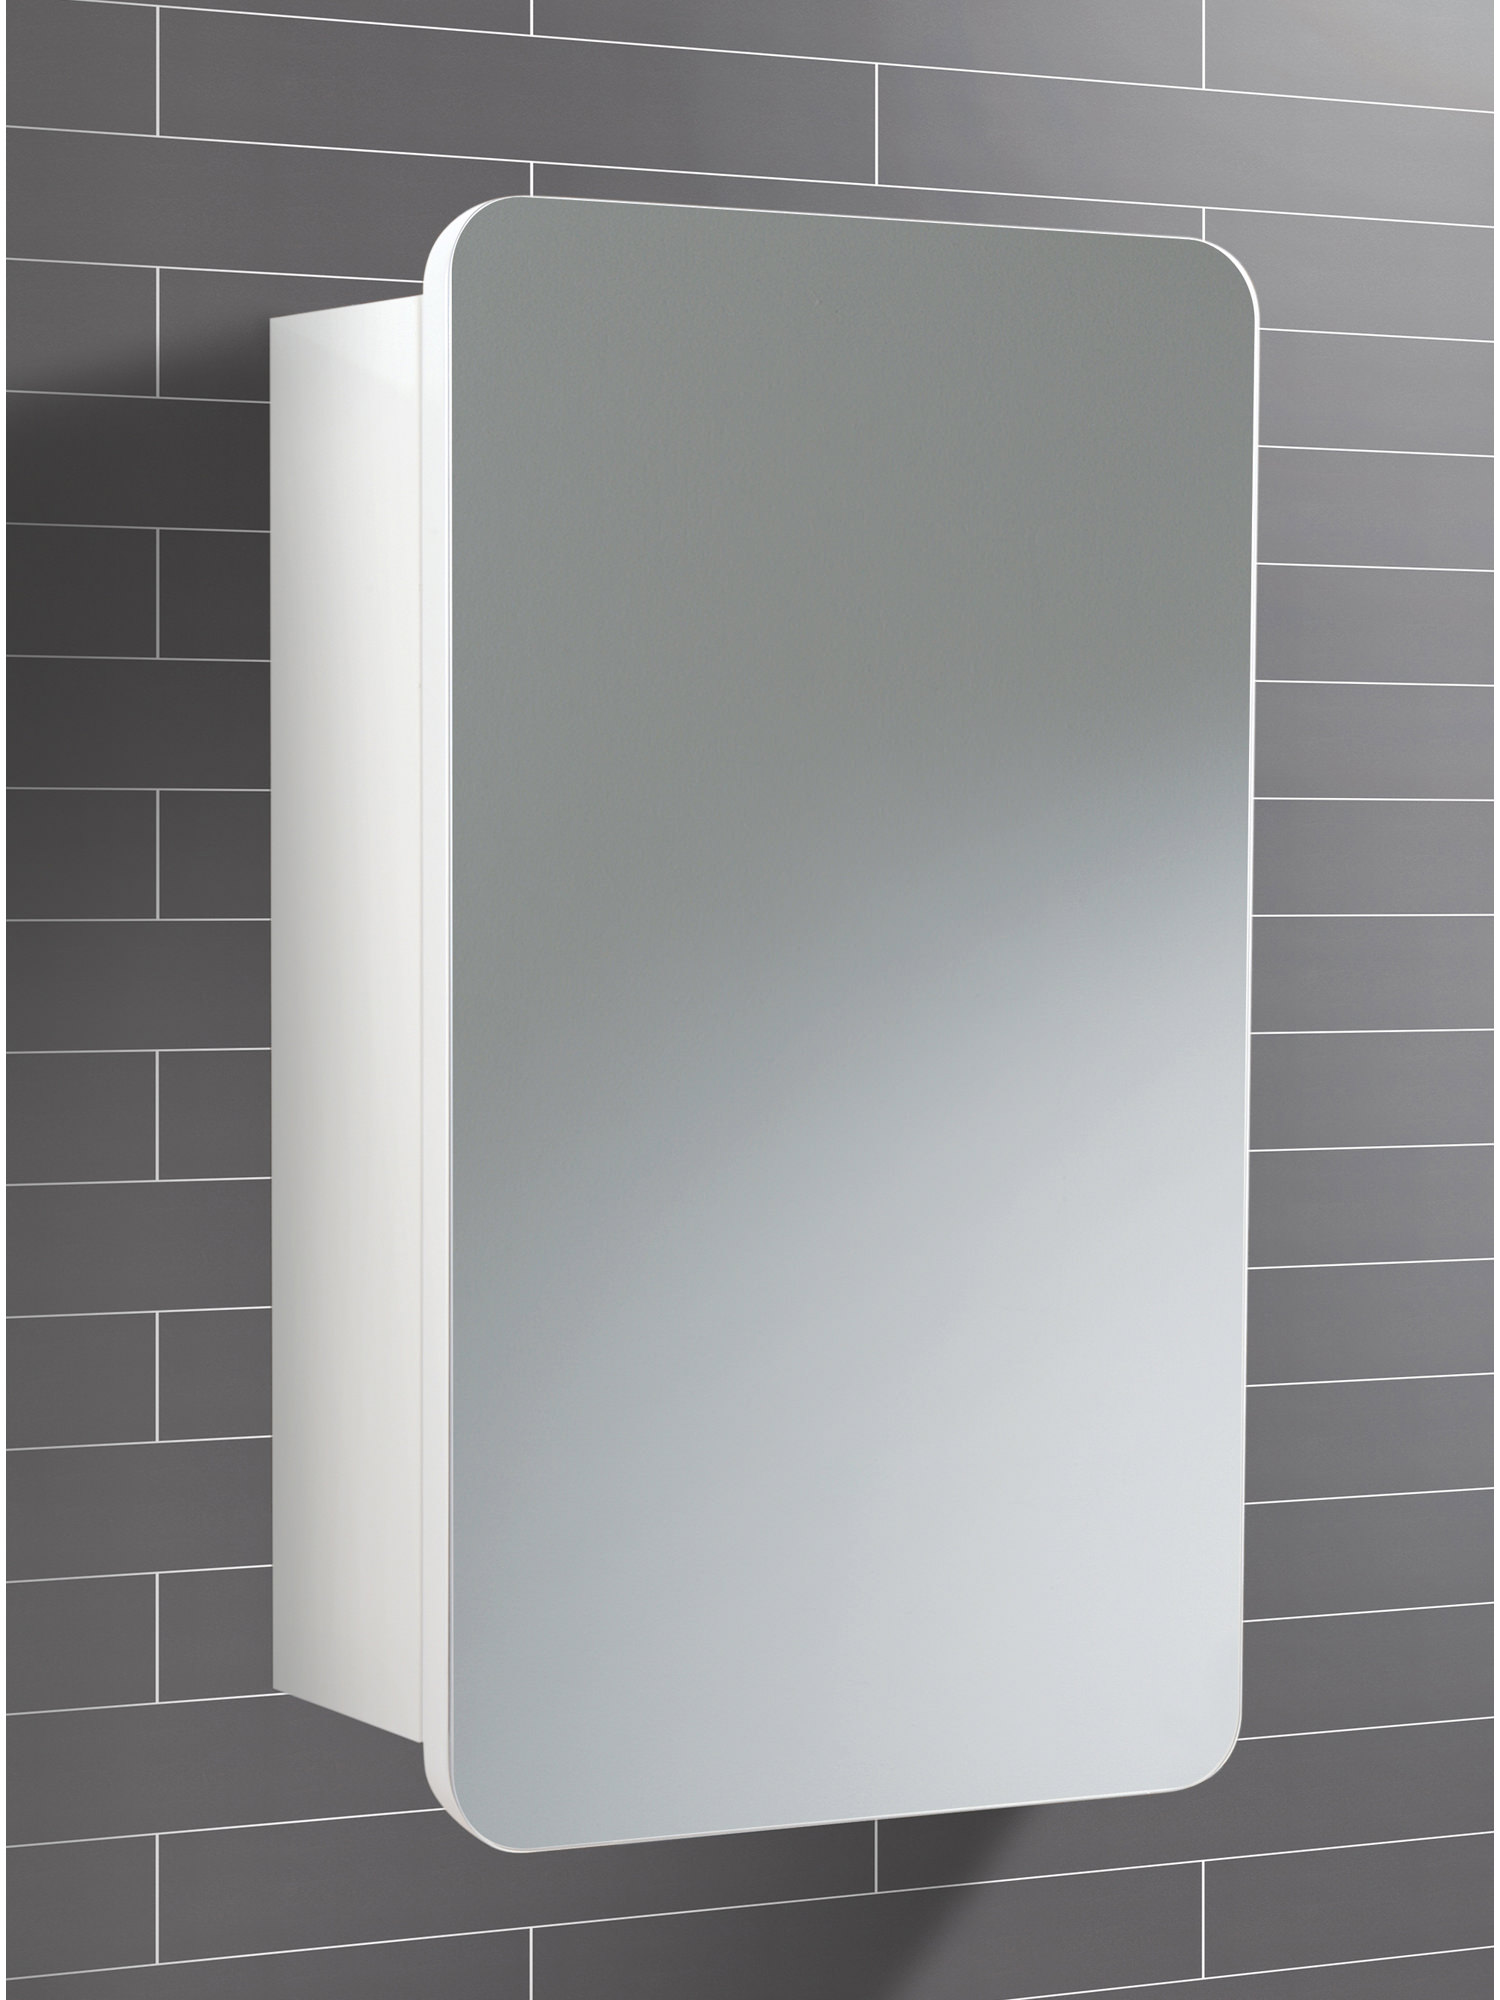 Bathroom Cabinet Mirror Doors Hib Montana Single Door Bathroom Mirrored Cabinet 350 X